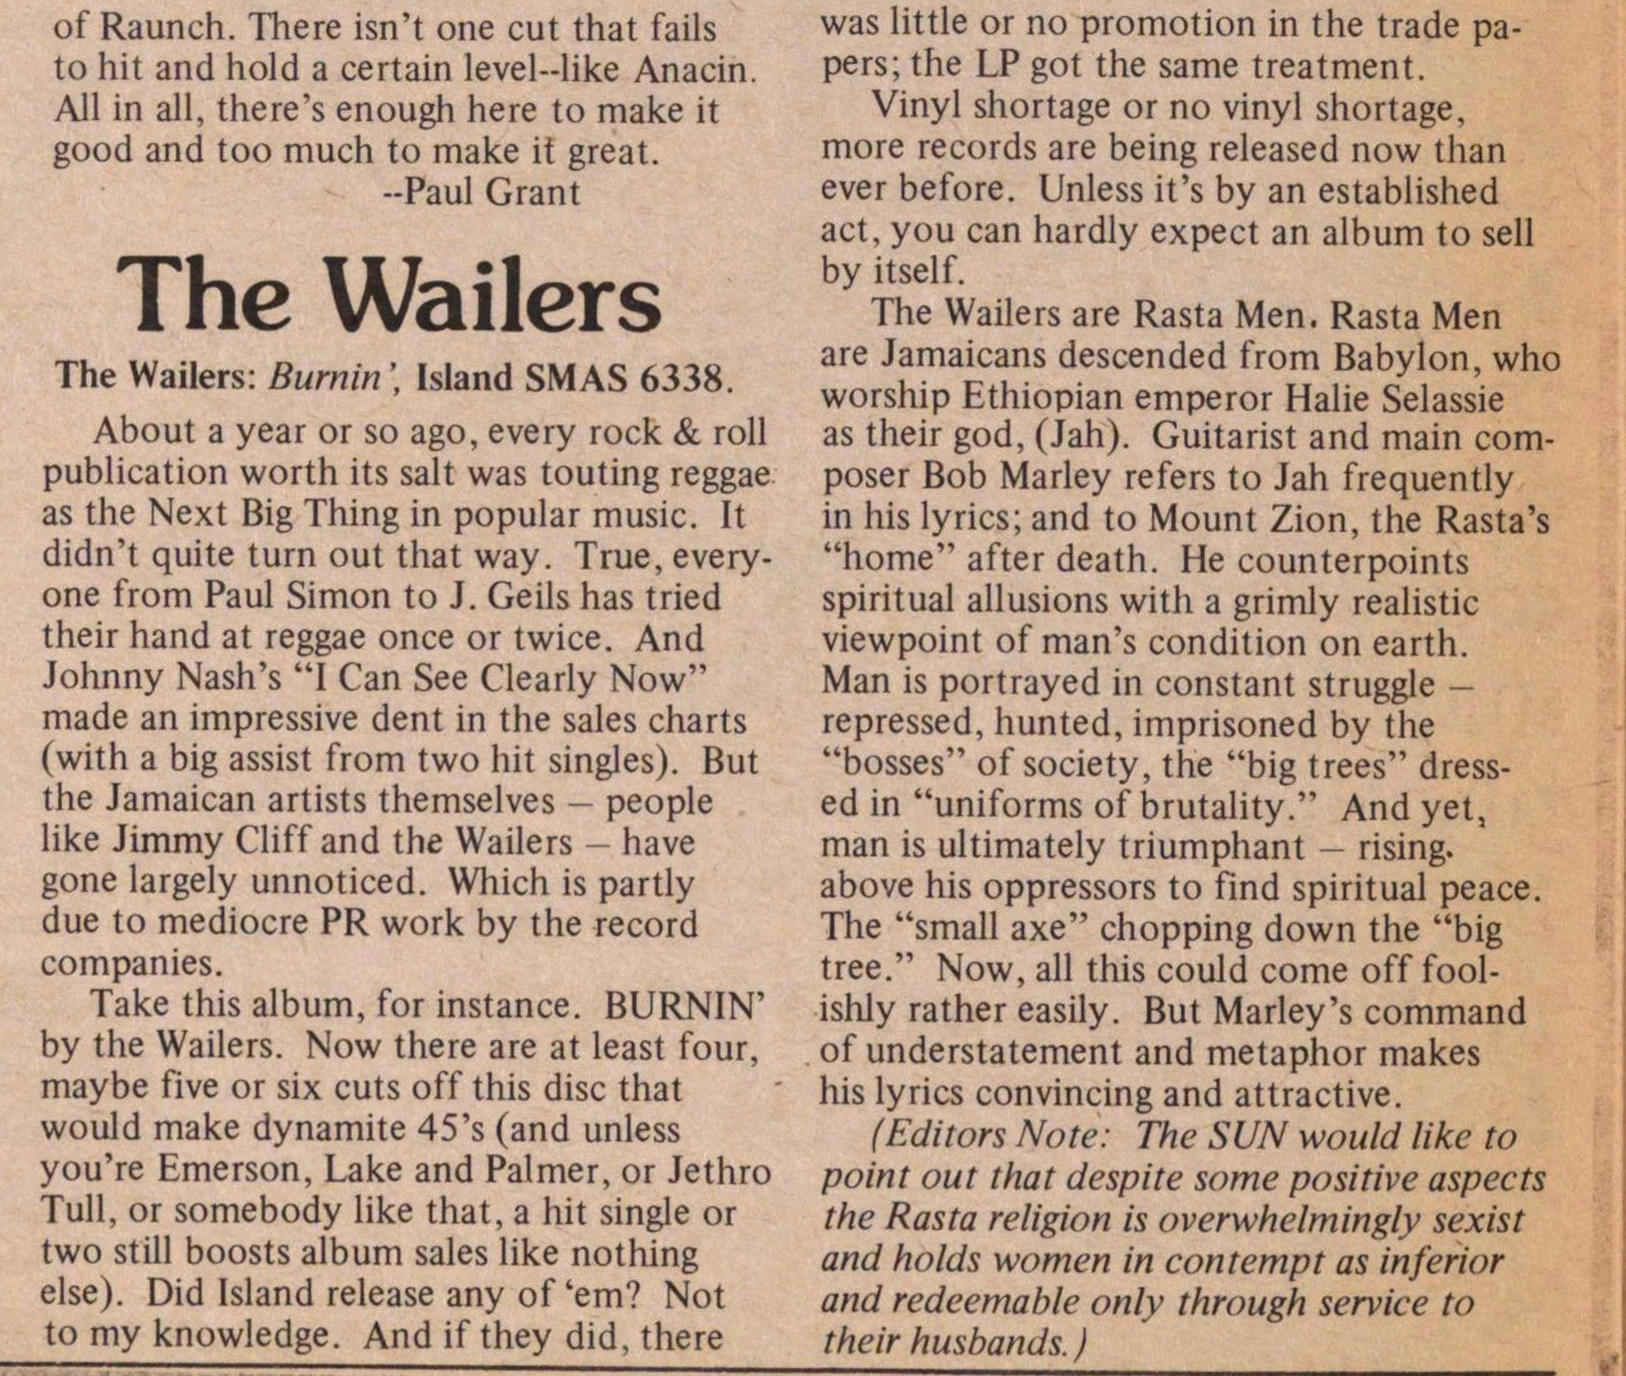 Records - The Wailers image